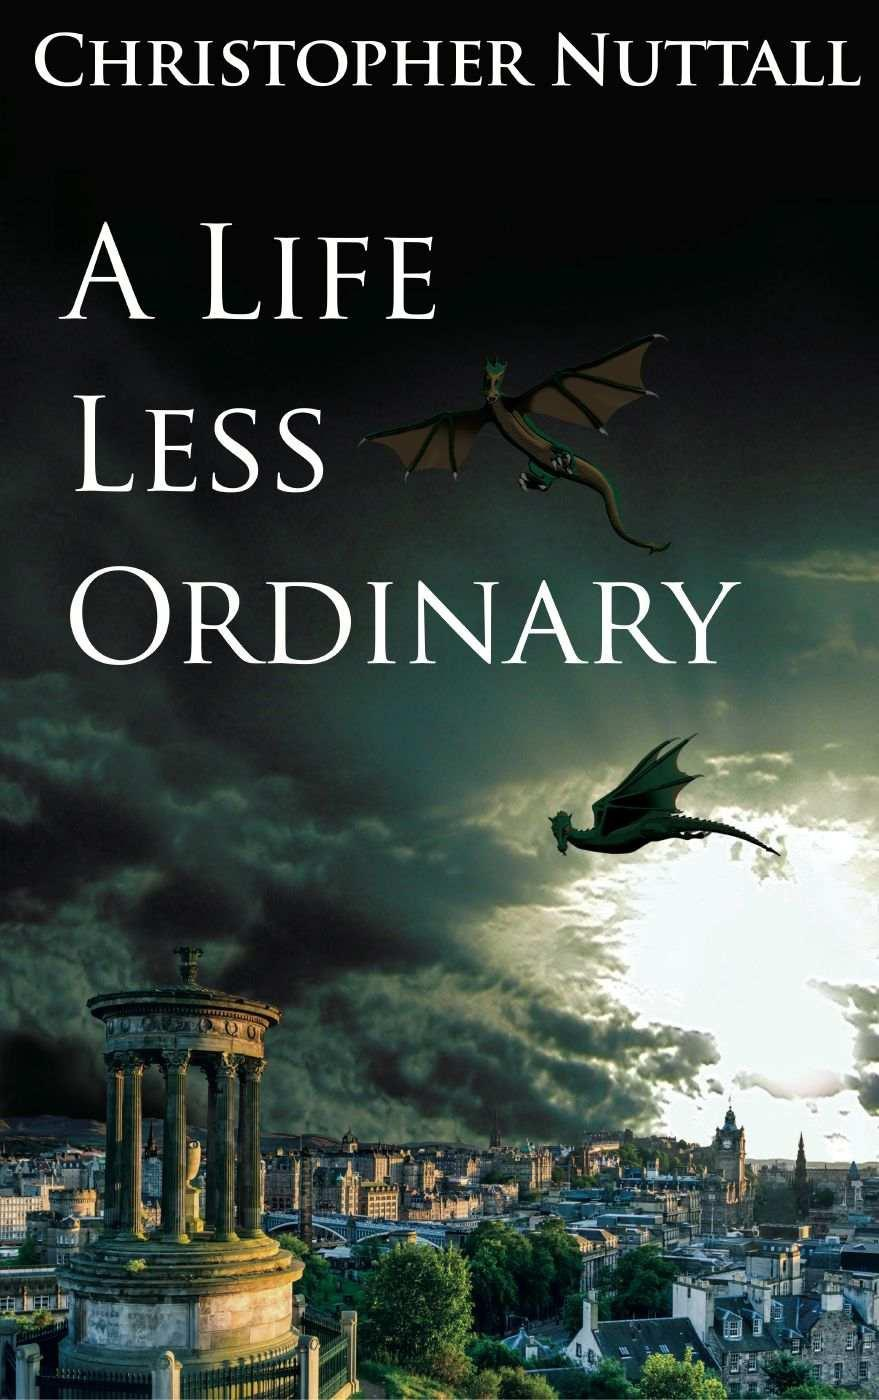 A Life Less Ordinary – Okay book but I liked the Author's Bookworm series better